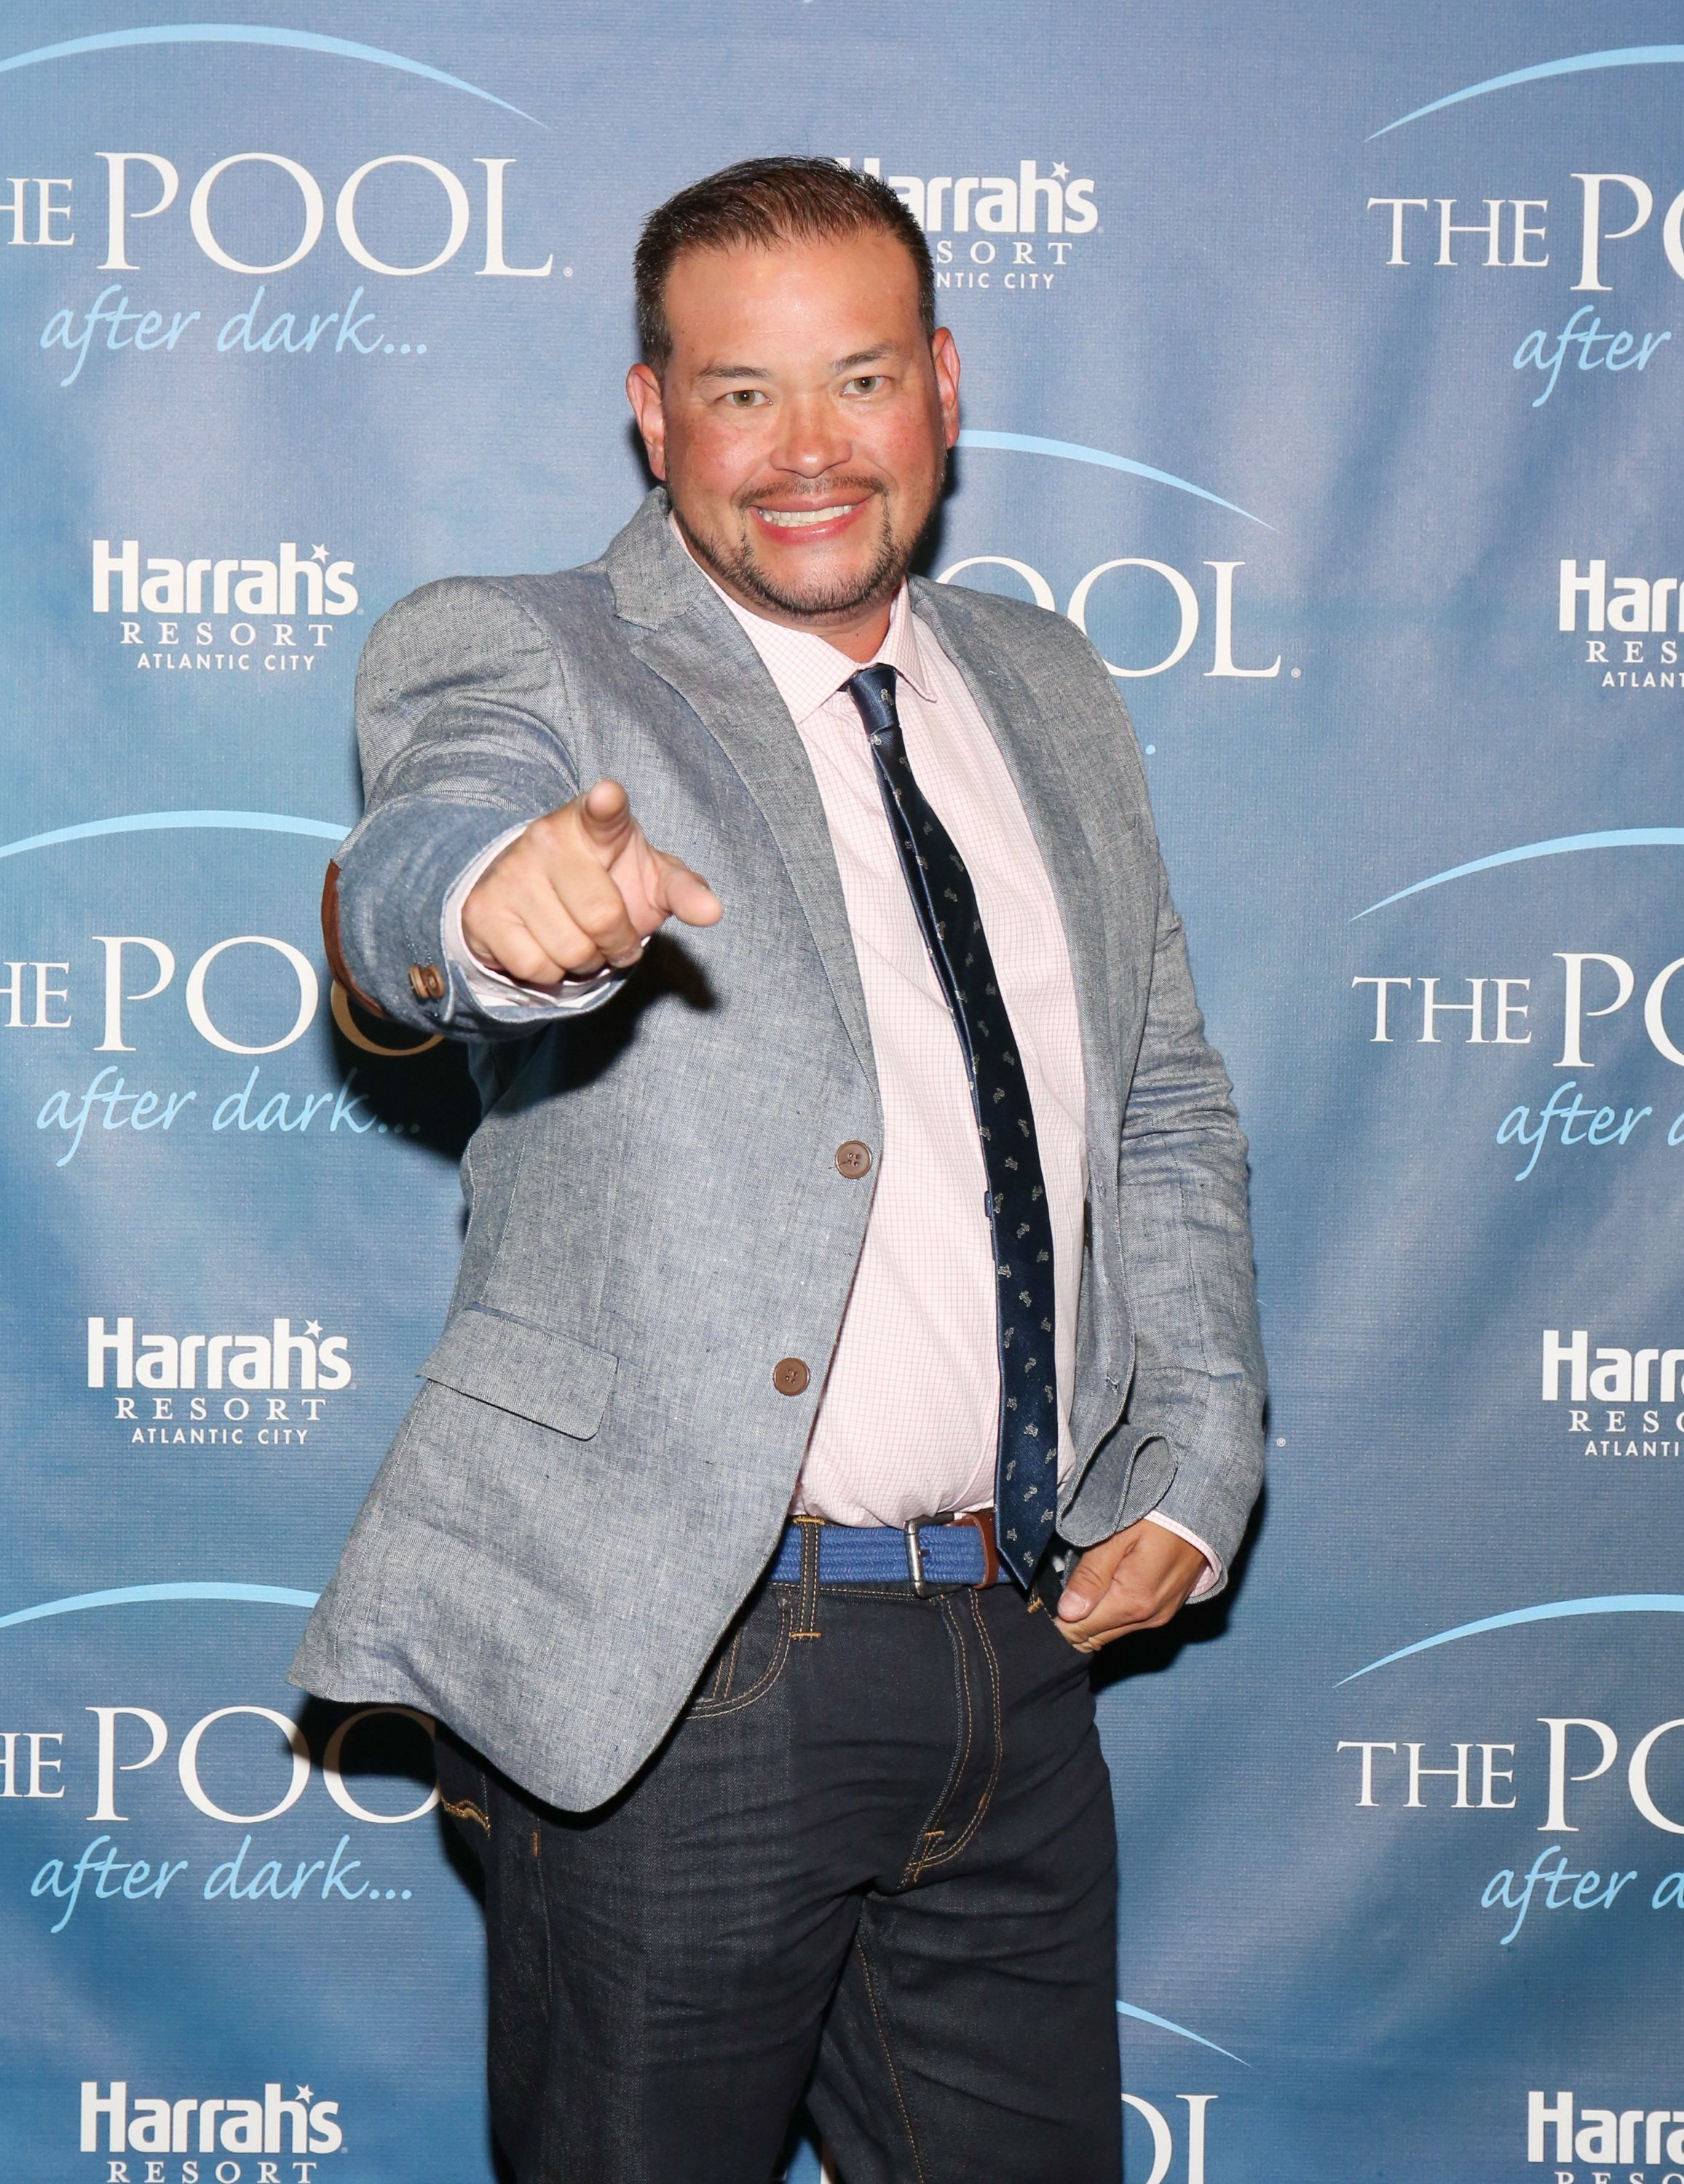 ATLANTIC CITY, NJ - MAY 30:  DJ Jon Gosselin performs at The Pool After Dark  at Harrah's Resort on Saturday  May 30, 2015 in Atlantic City, New Jersey.  (Photo by Tom Briglia/FilmMagic)